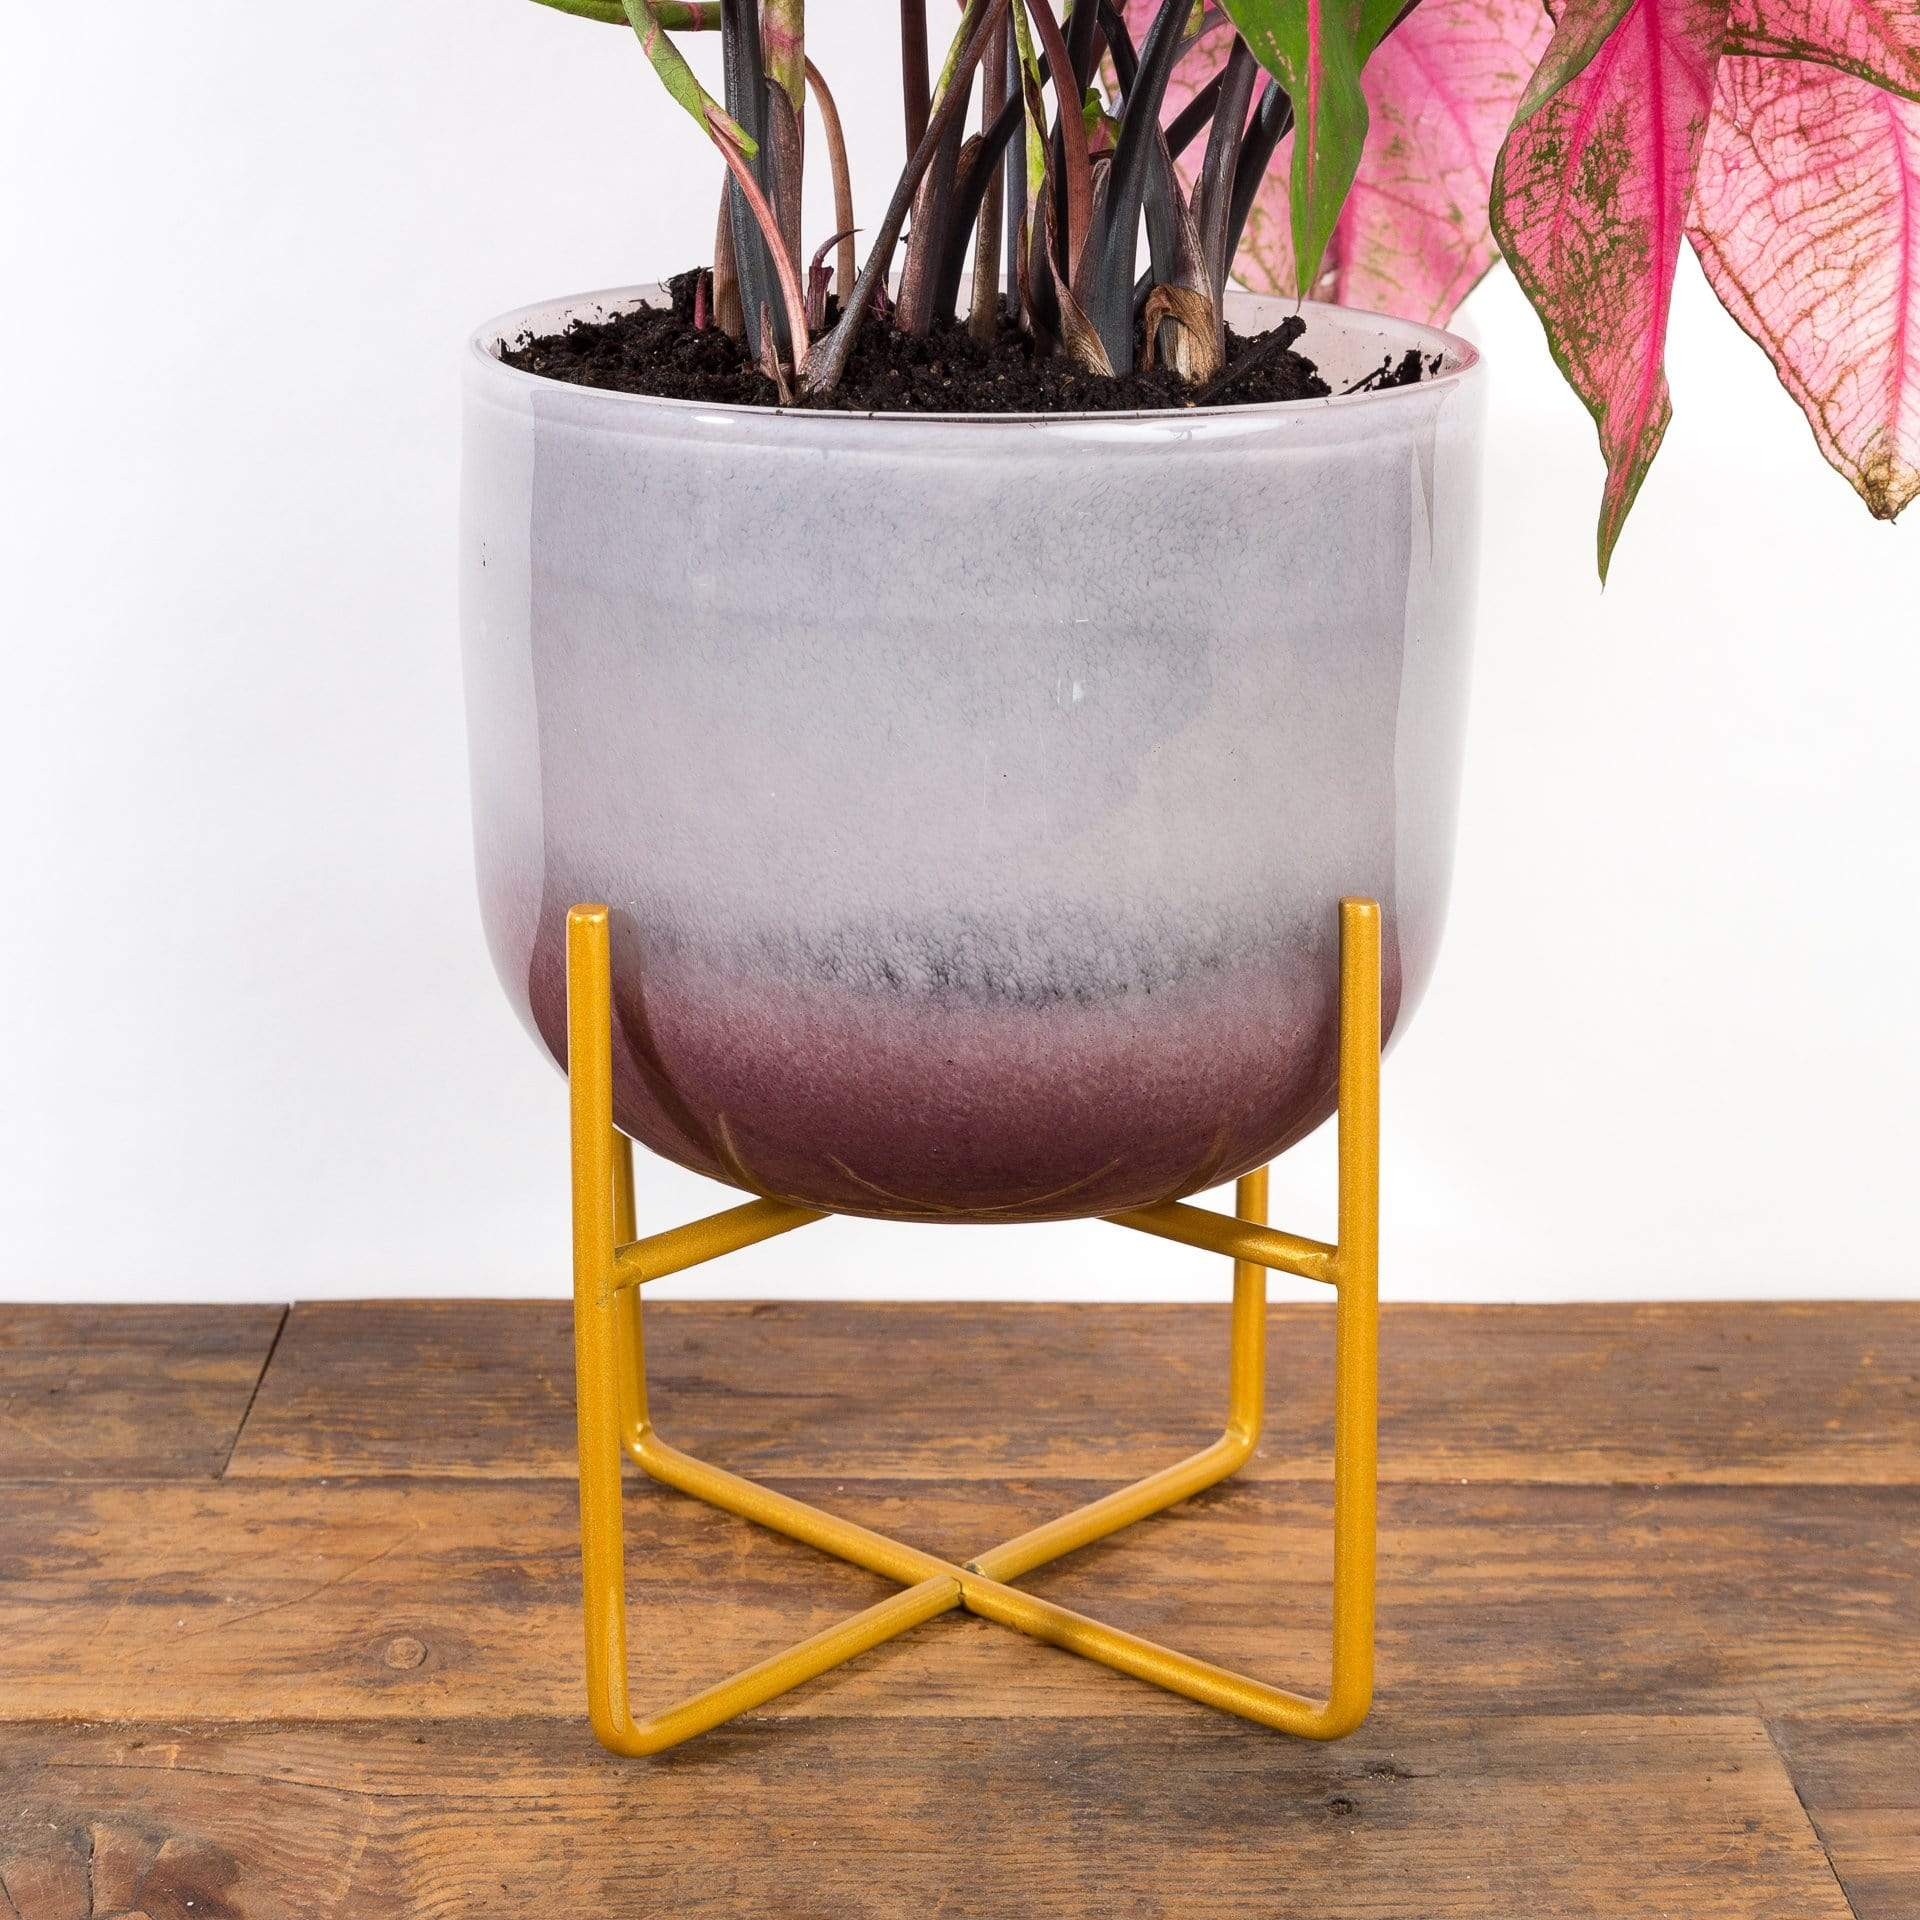 Blushing Glass Planter - Urban Sprouts